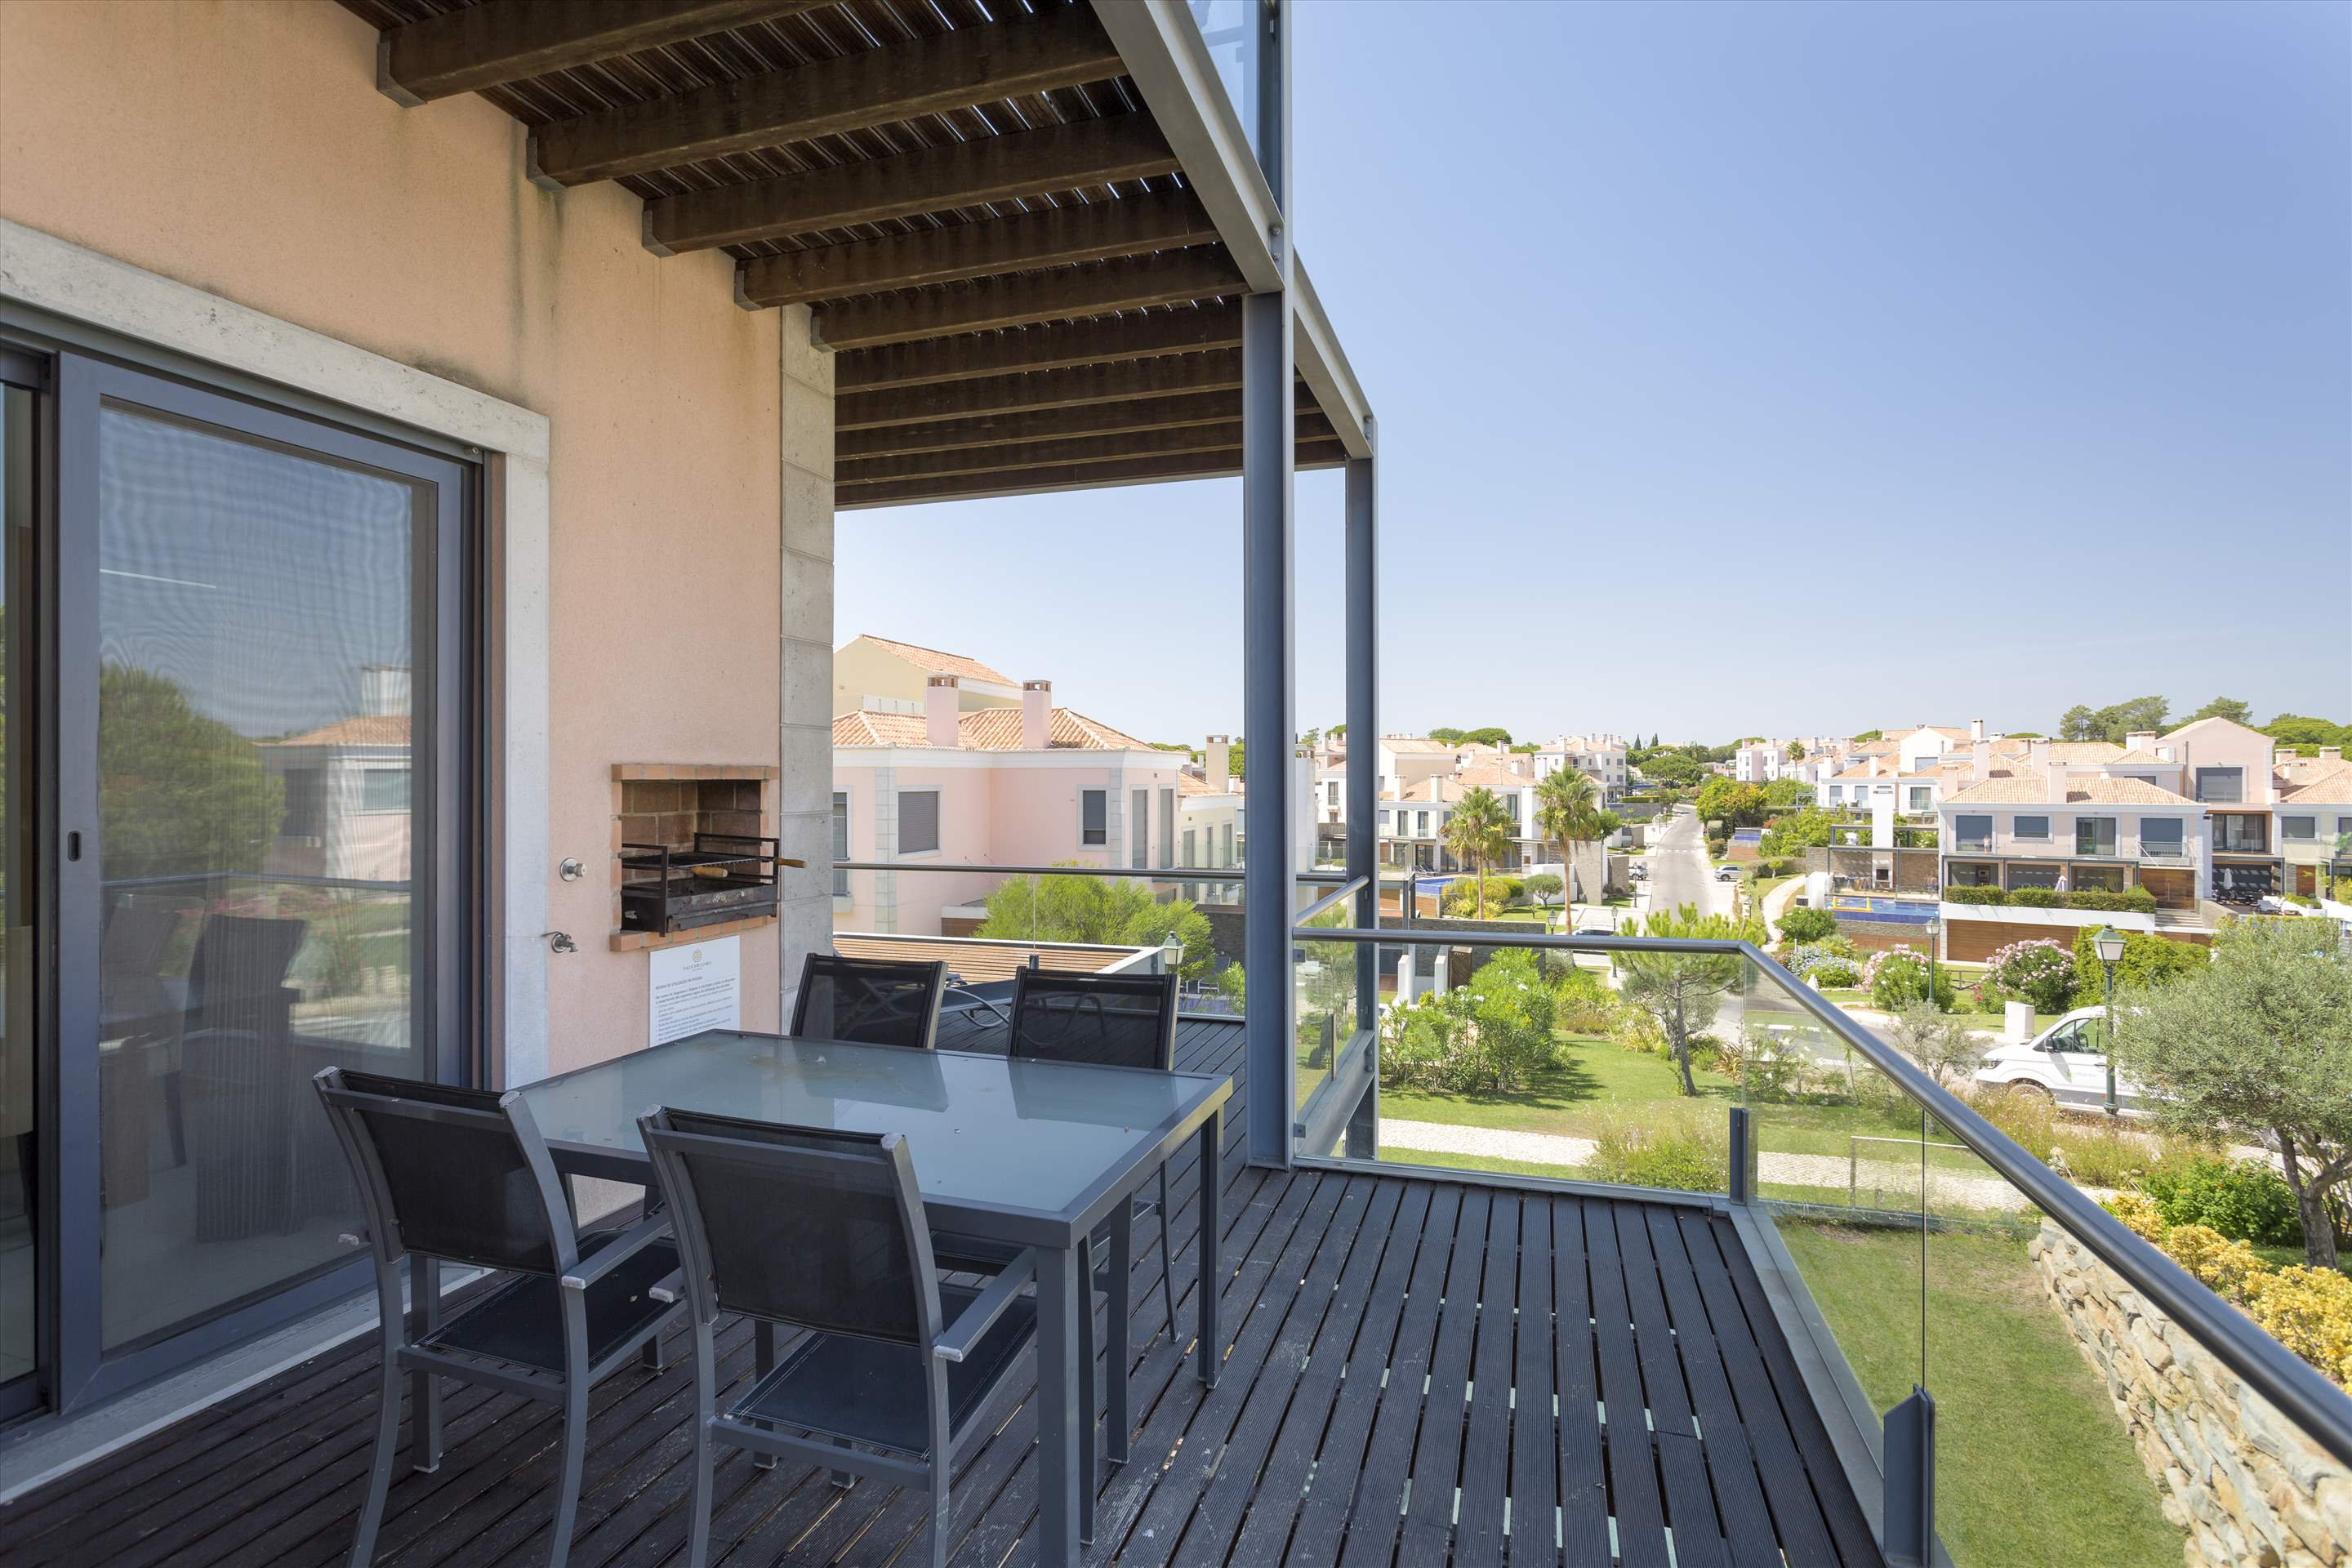 Apartment Fernanda, 2 bedroom apartment in Vale do Lobo, Algarve Photo #2